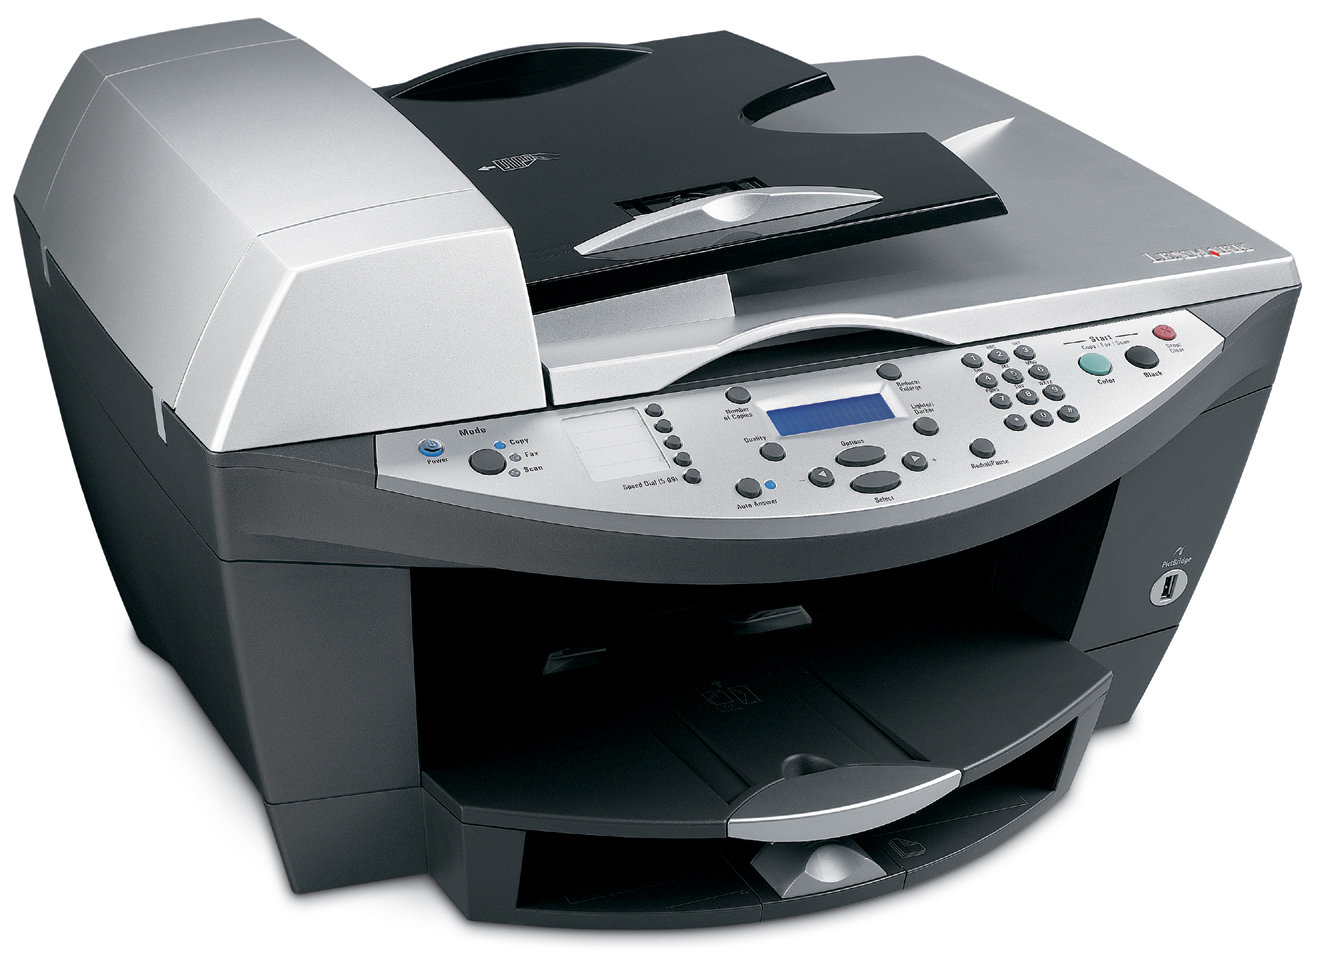 Lexmark 7100 Series All-In-One